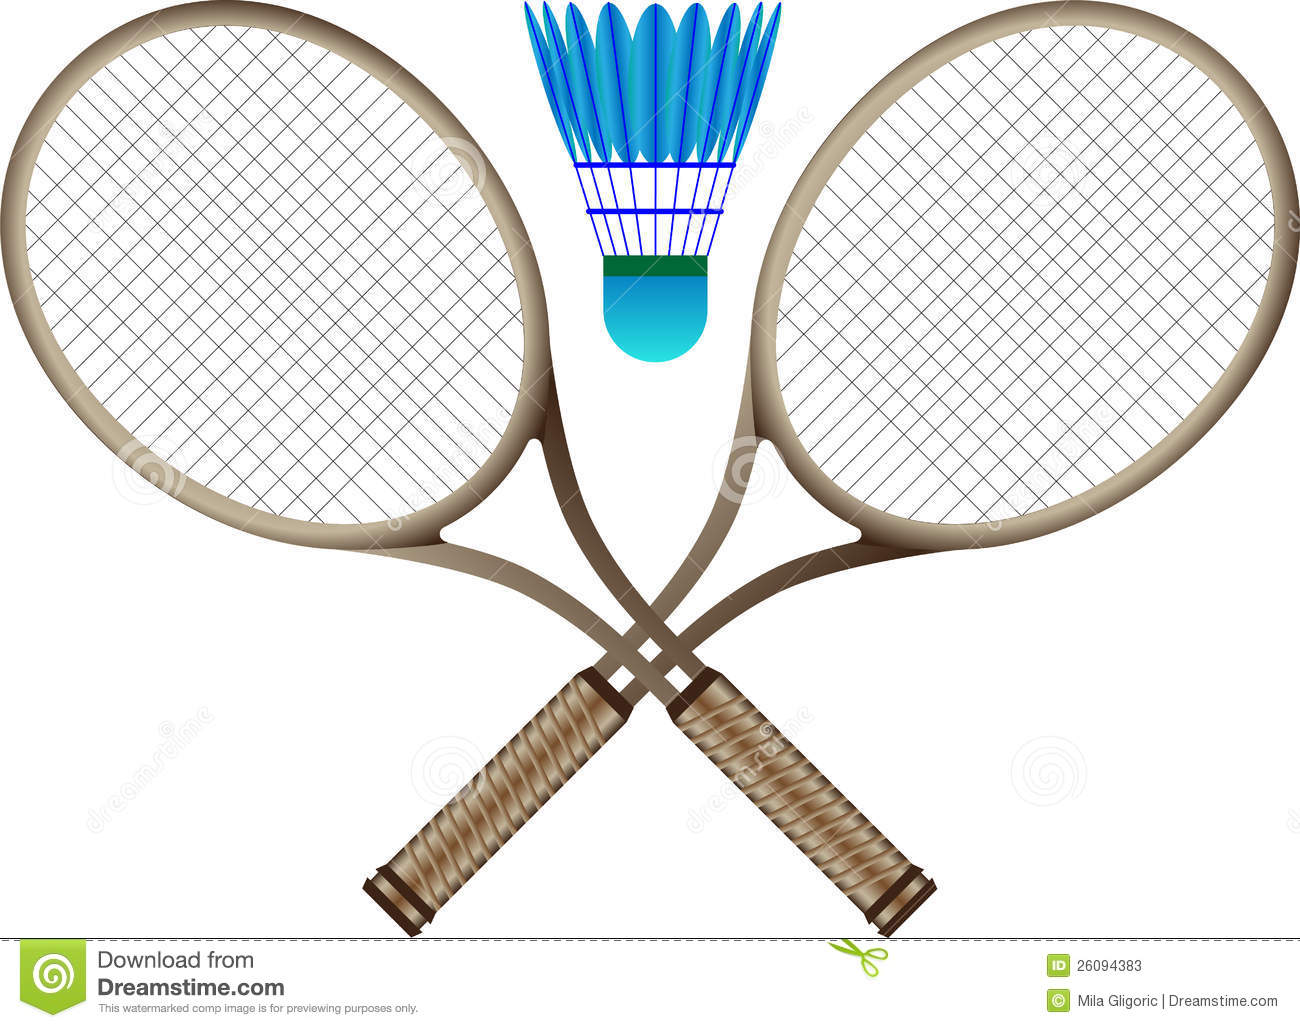 Badminton Stock Photos - Image: 26094383